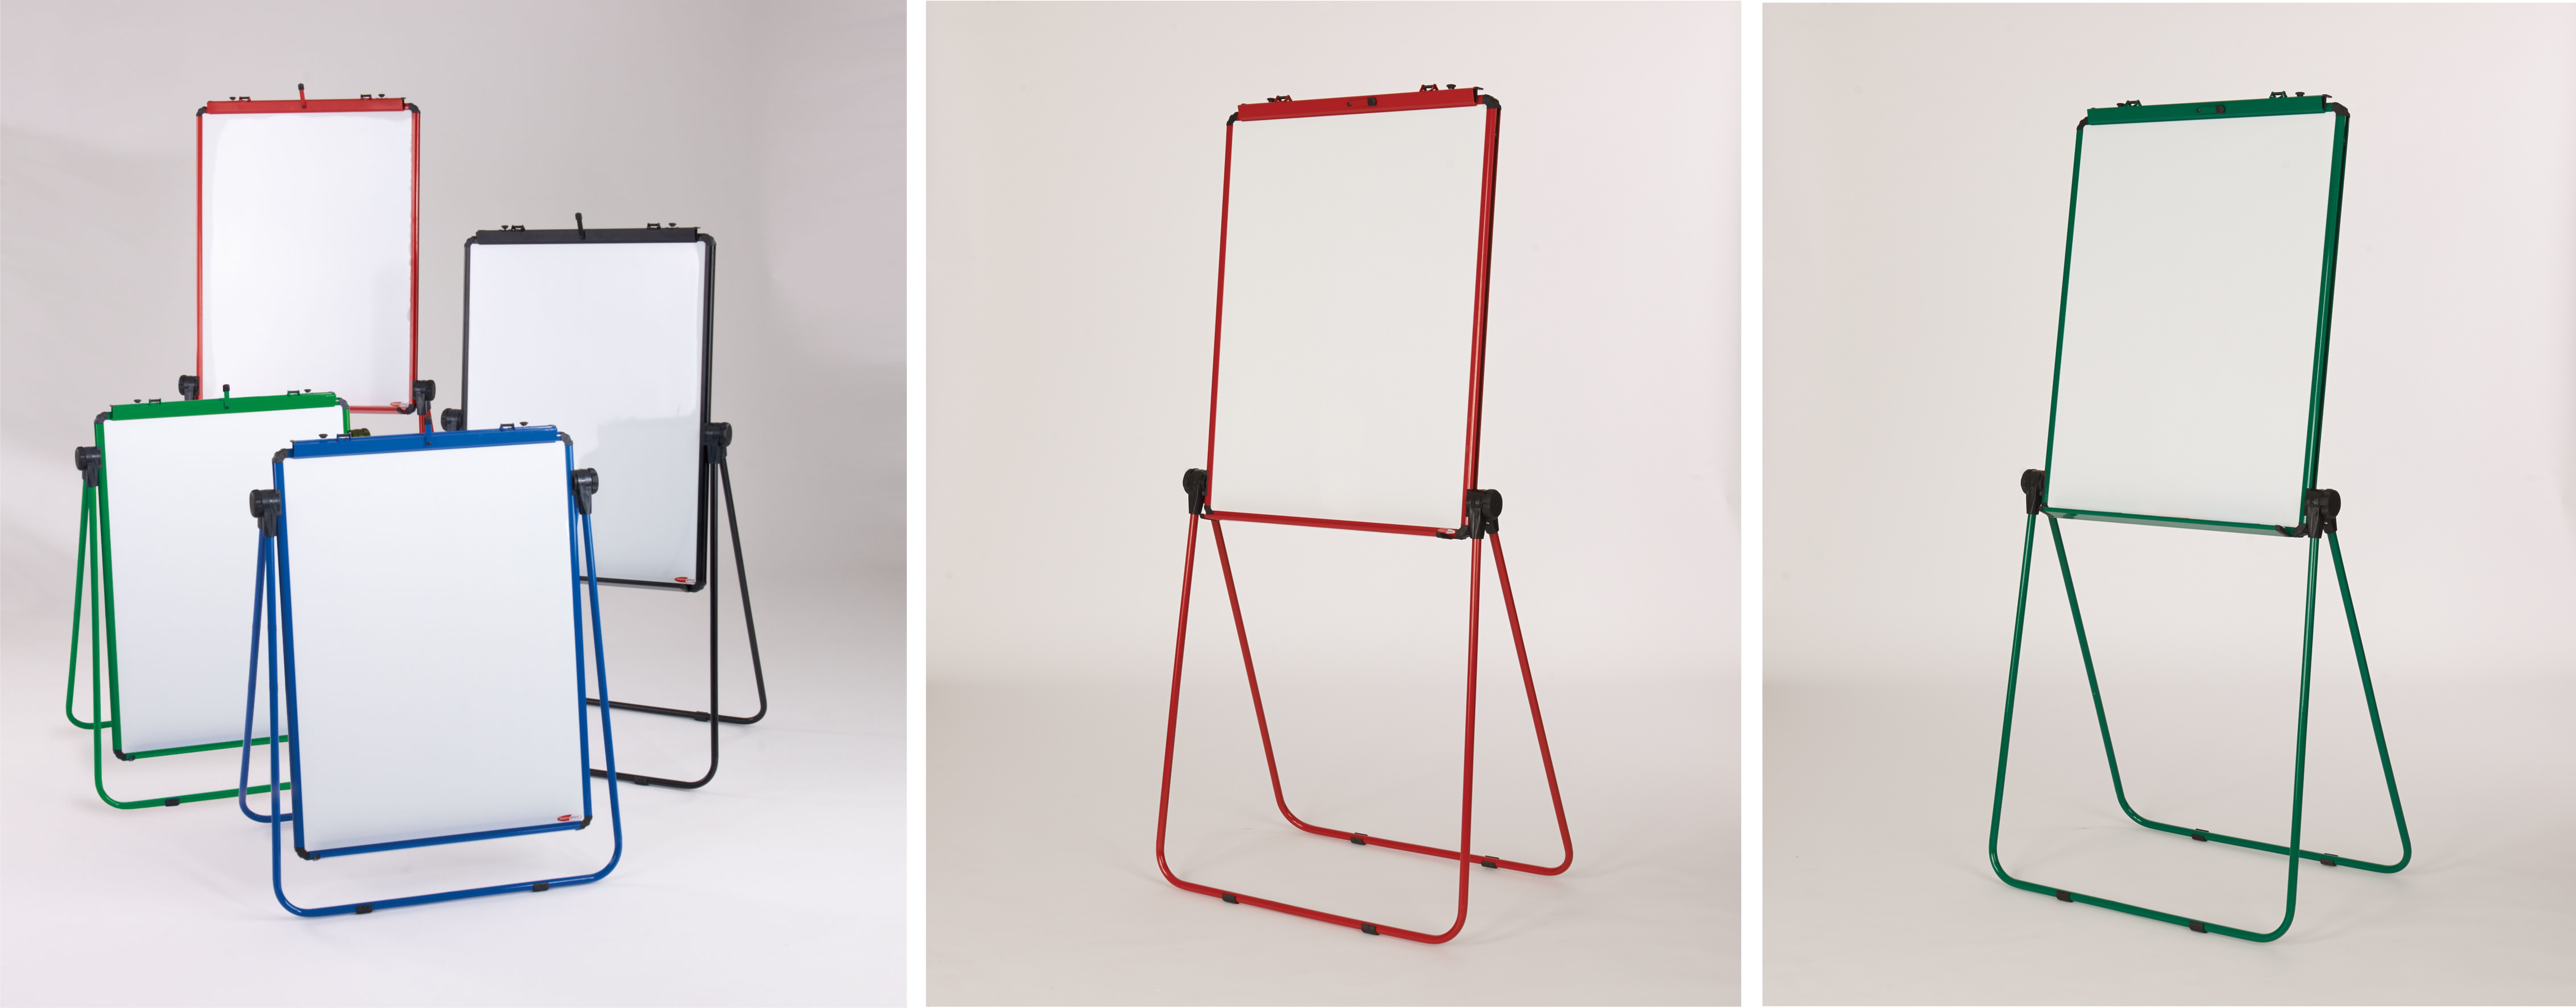 The Ultimate Loop Leg Flipchart Easel